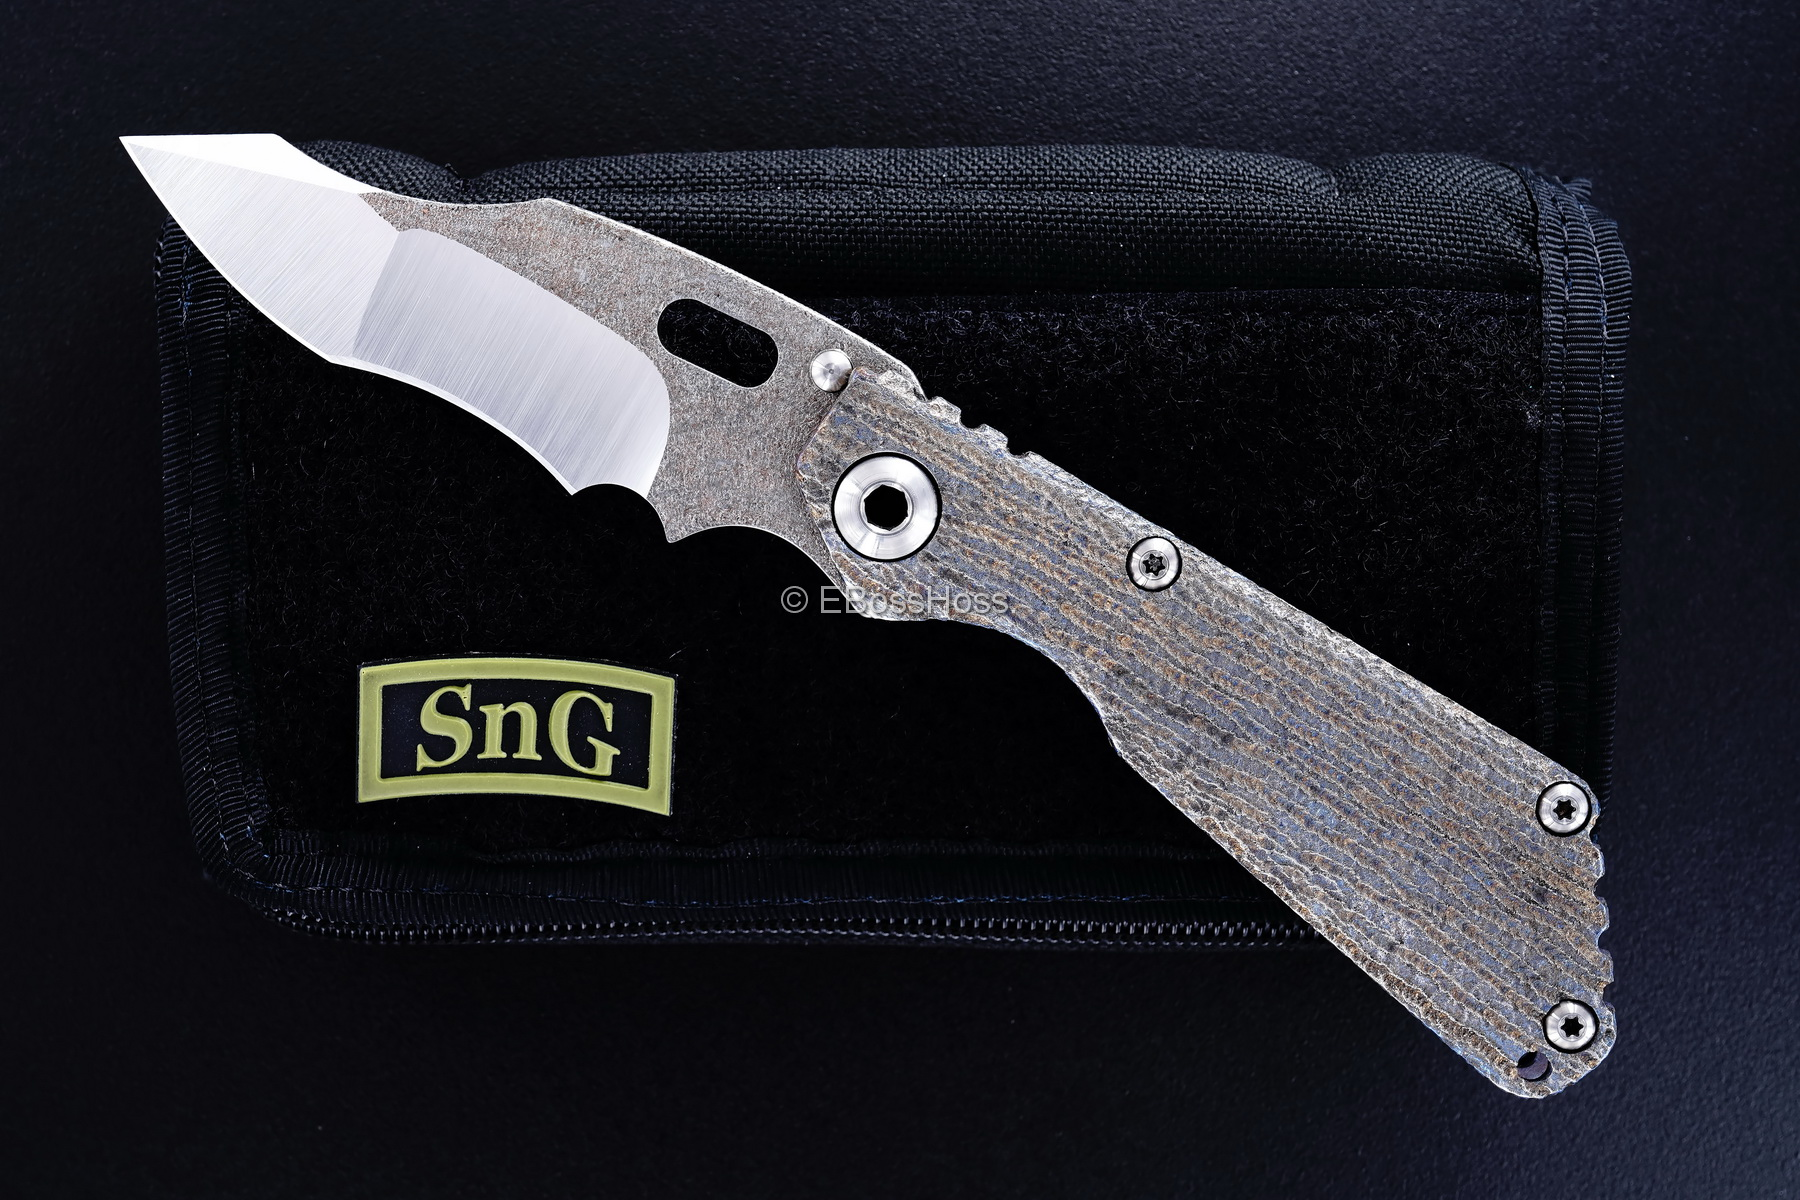 Mick Strider (MSC) Custom Magma NM Recurve SnG - Finish Texture by Forrest Strider